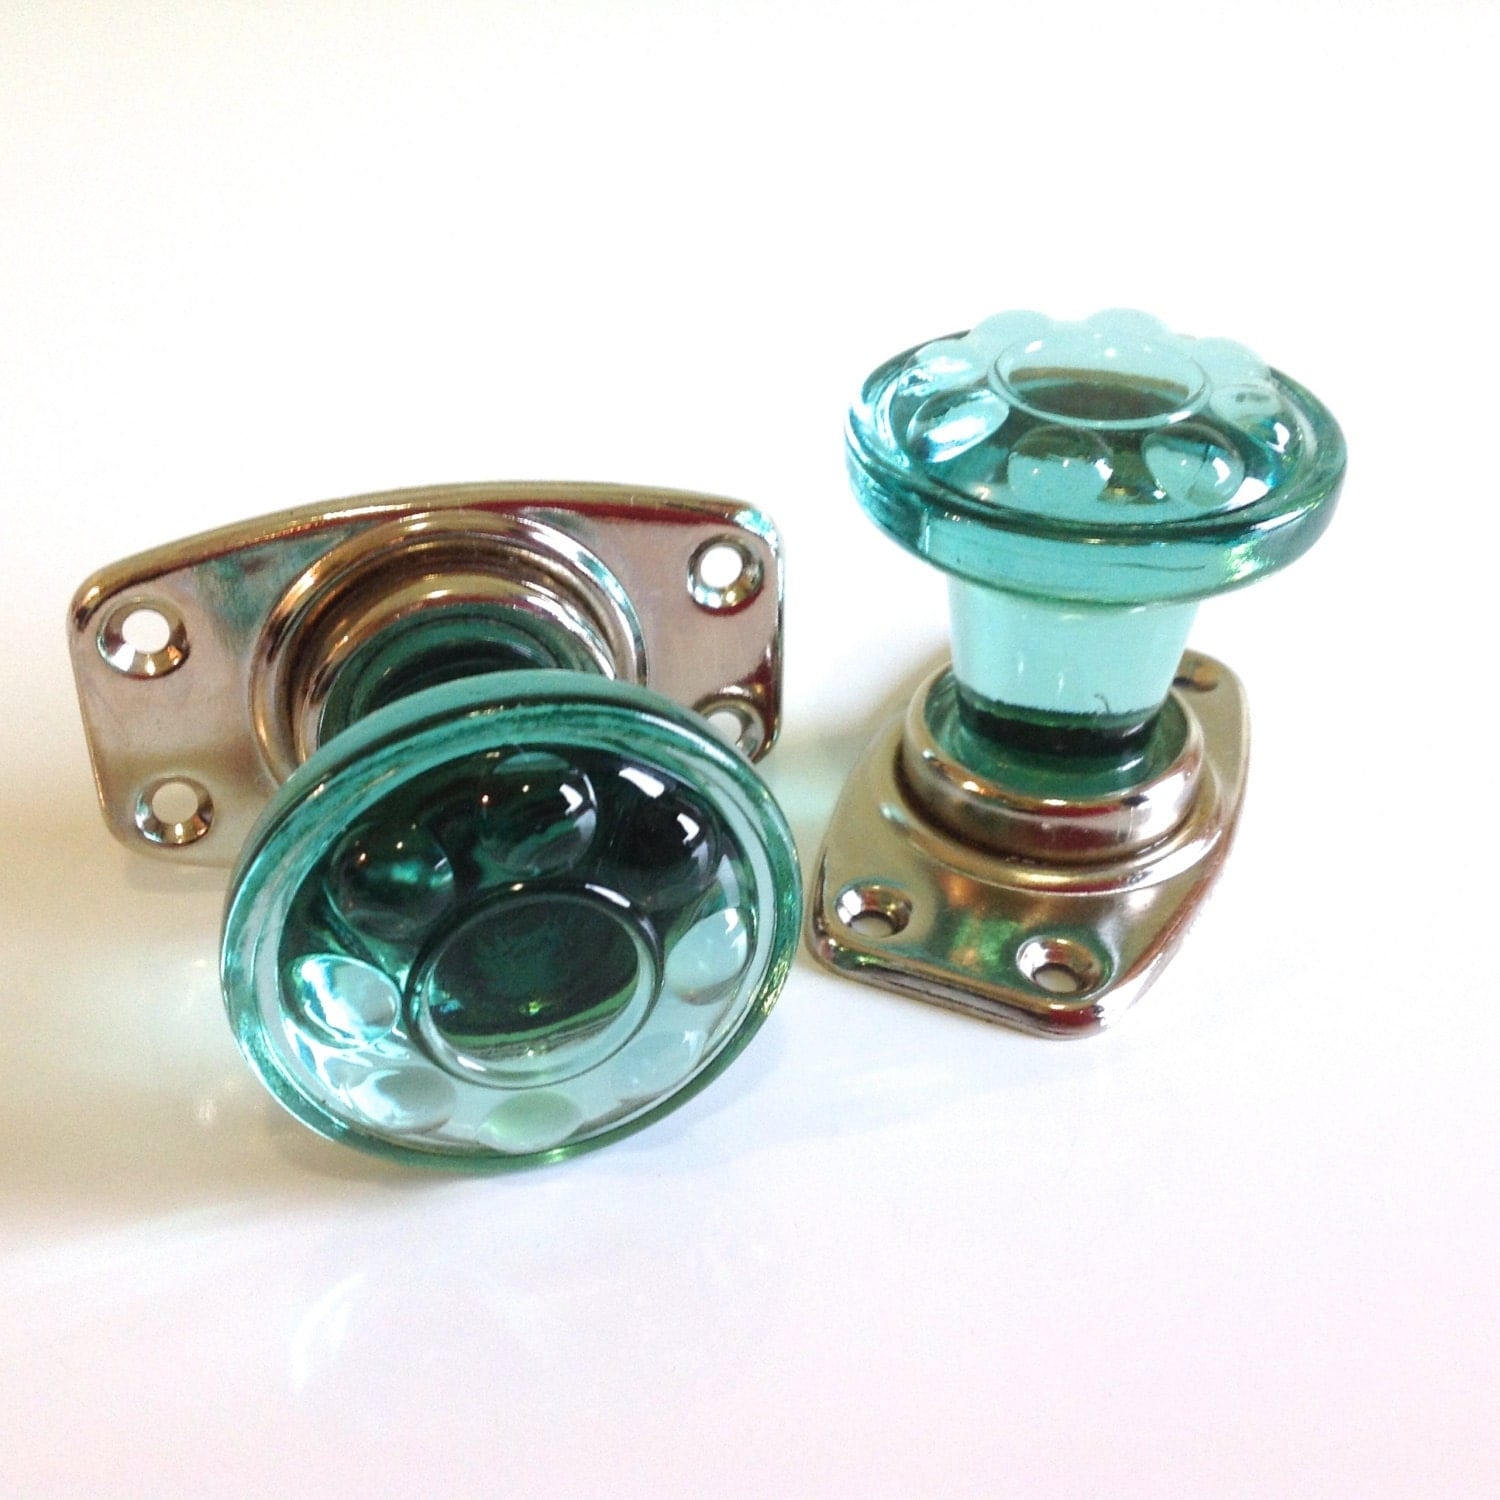 Vintage Door Knobs Door Handles Green Glass Knobs